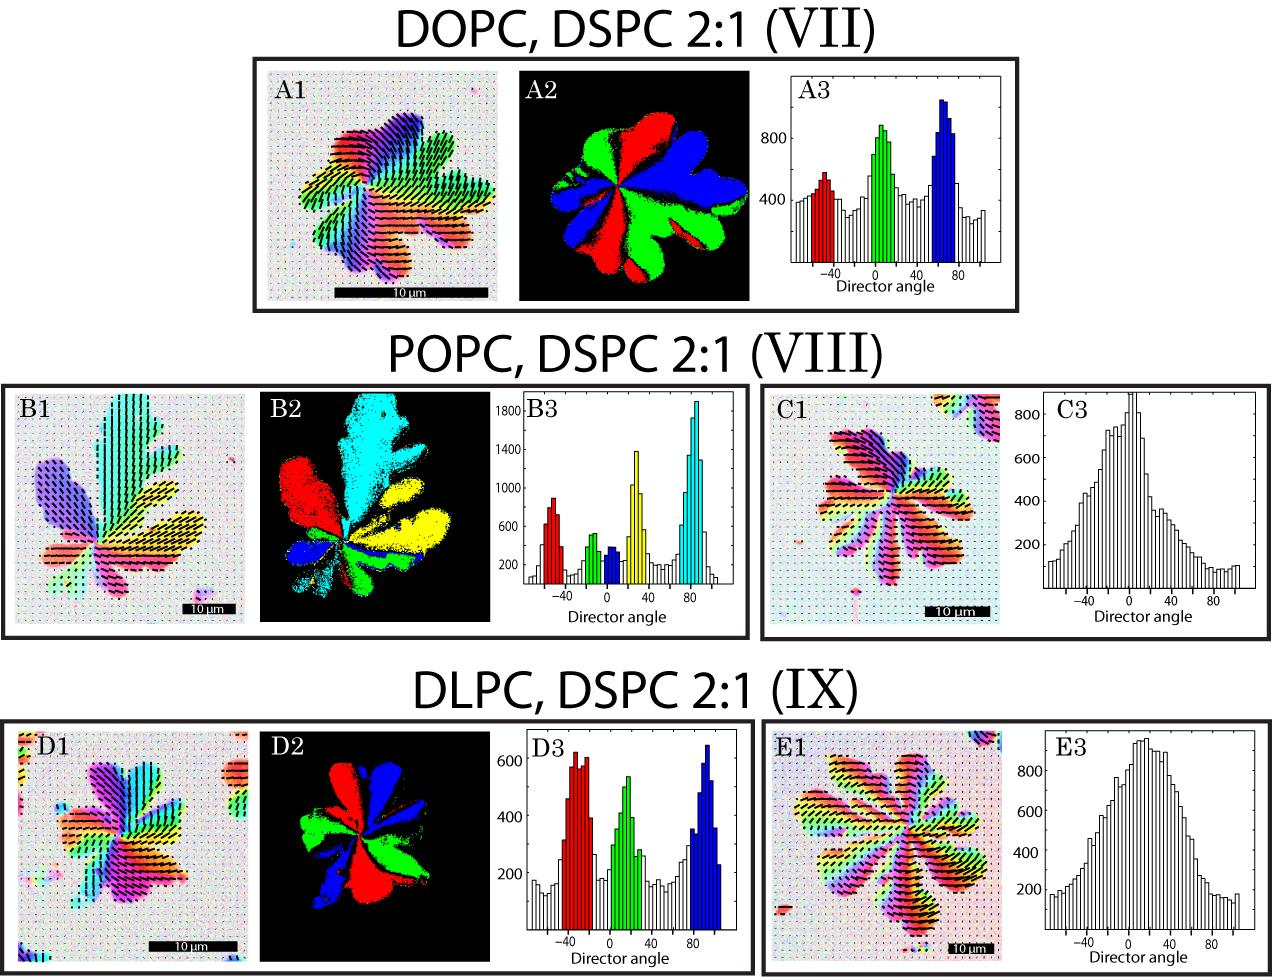 Chapter 5 Influence of Lipid Composition on Texture in Lipid Bilayers 5.3 Distribution of Orientations within the Domains Figure 5.